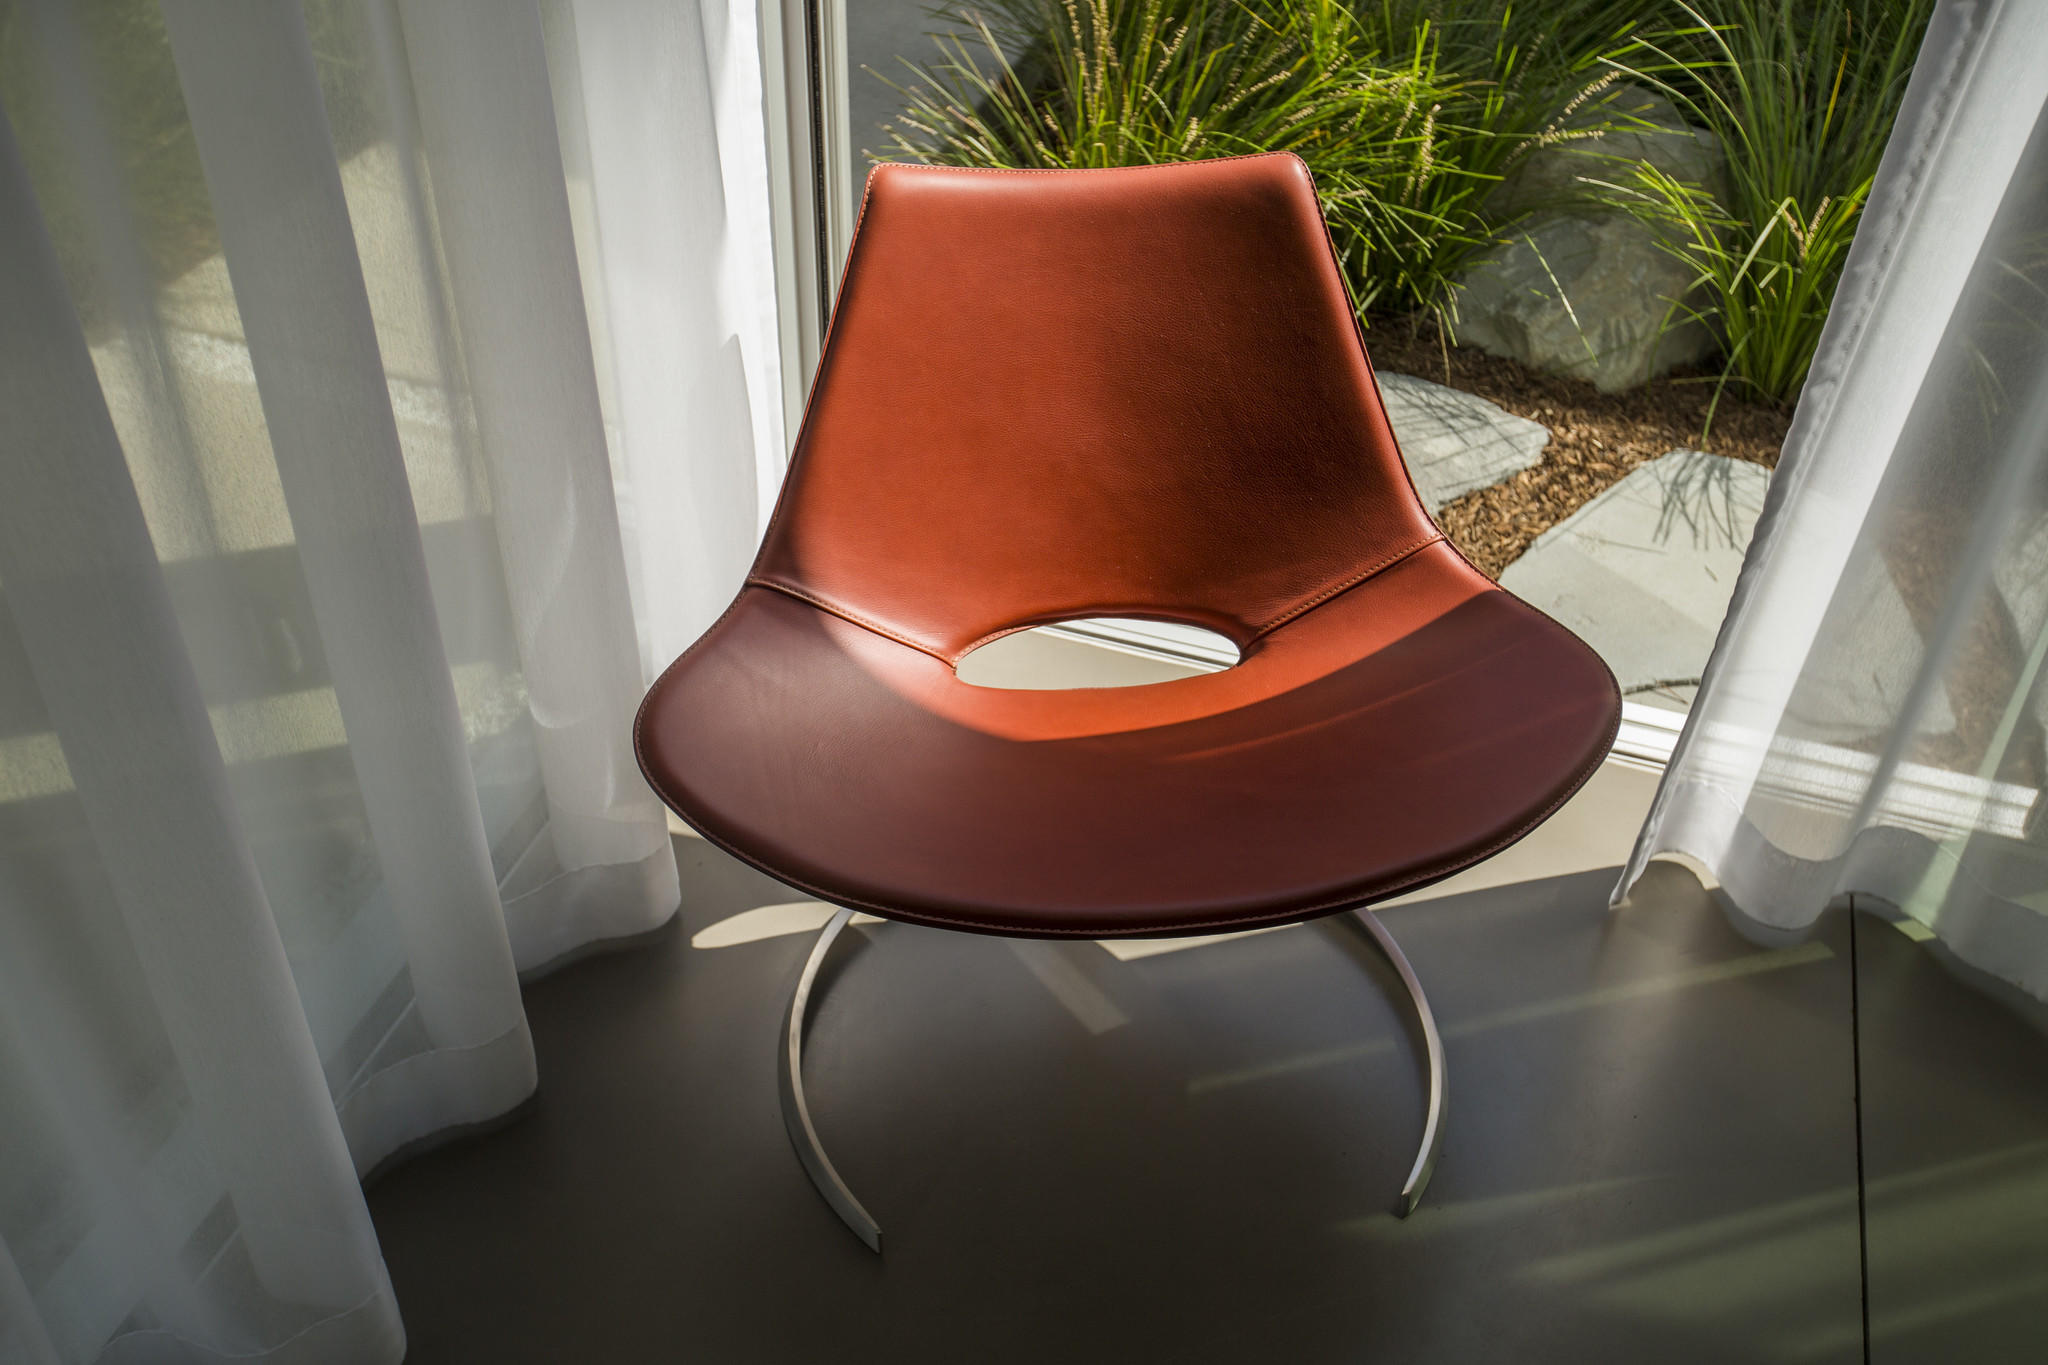 Named after the Turkish word for sword, the Scimitar reading chair was manufactured from original technical drawings from the 1960s, made in Denmark and stitched in Italy.